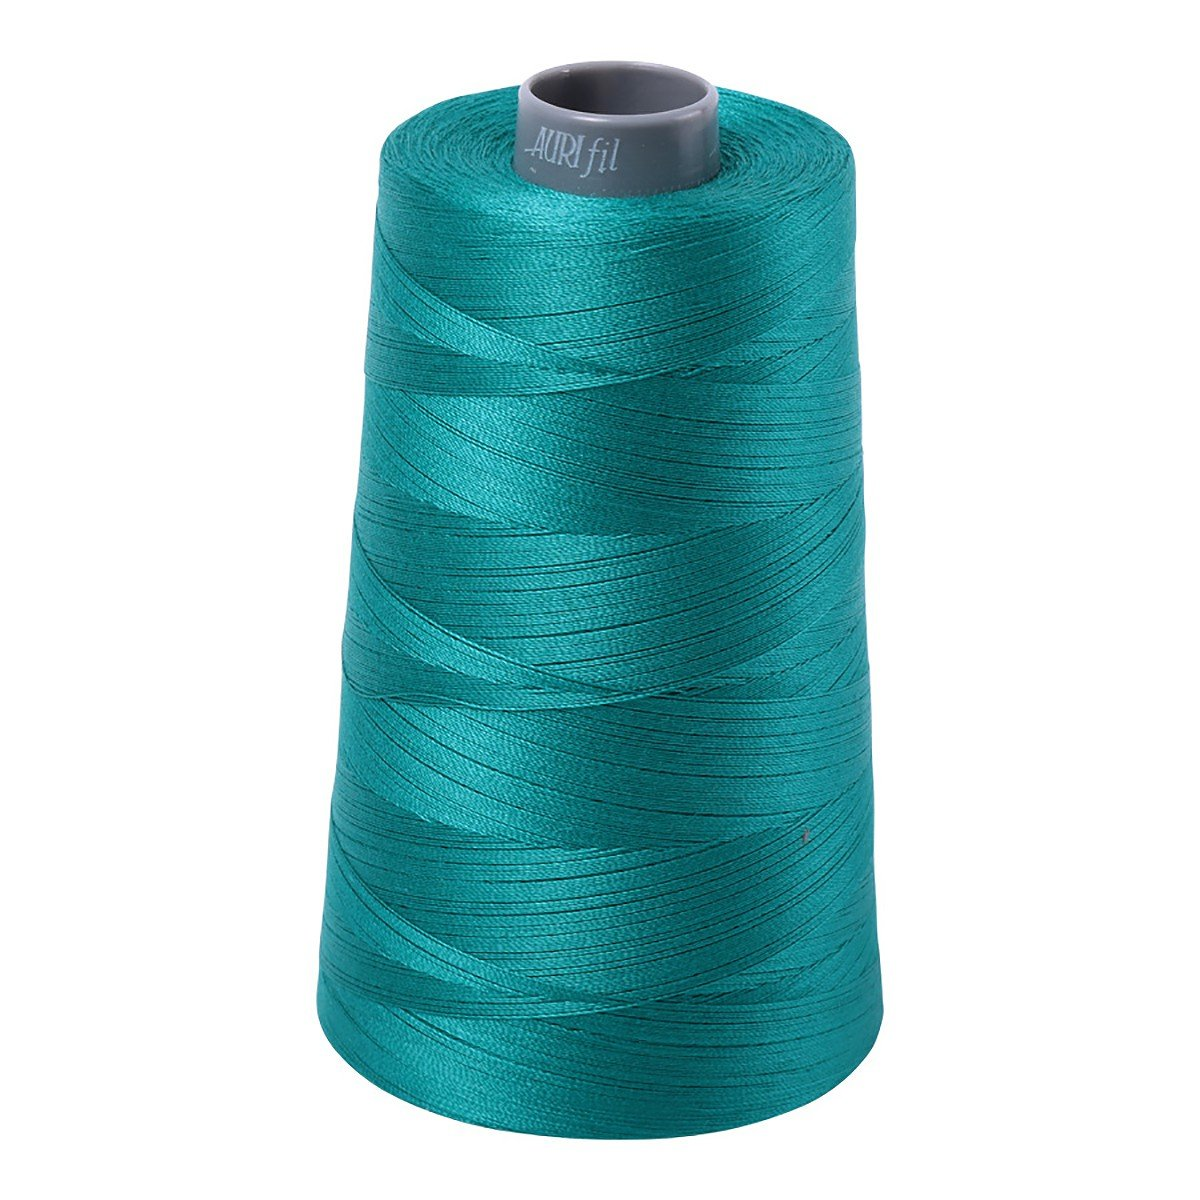 Mako (Cotton) Embroidery Thread 28wt 3609yds Jade